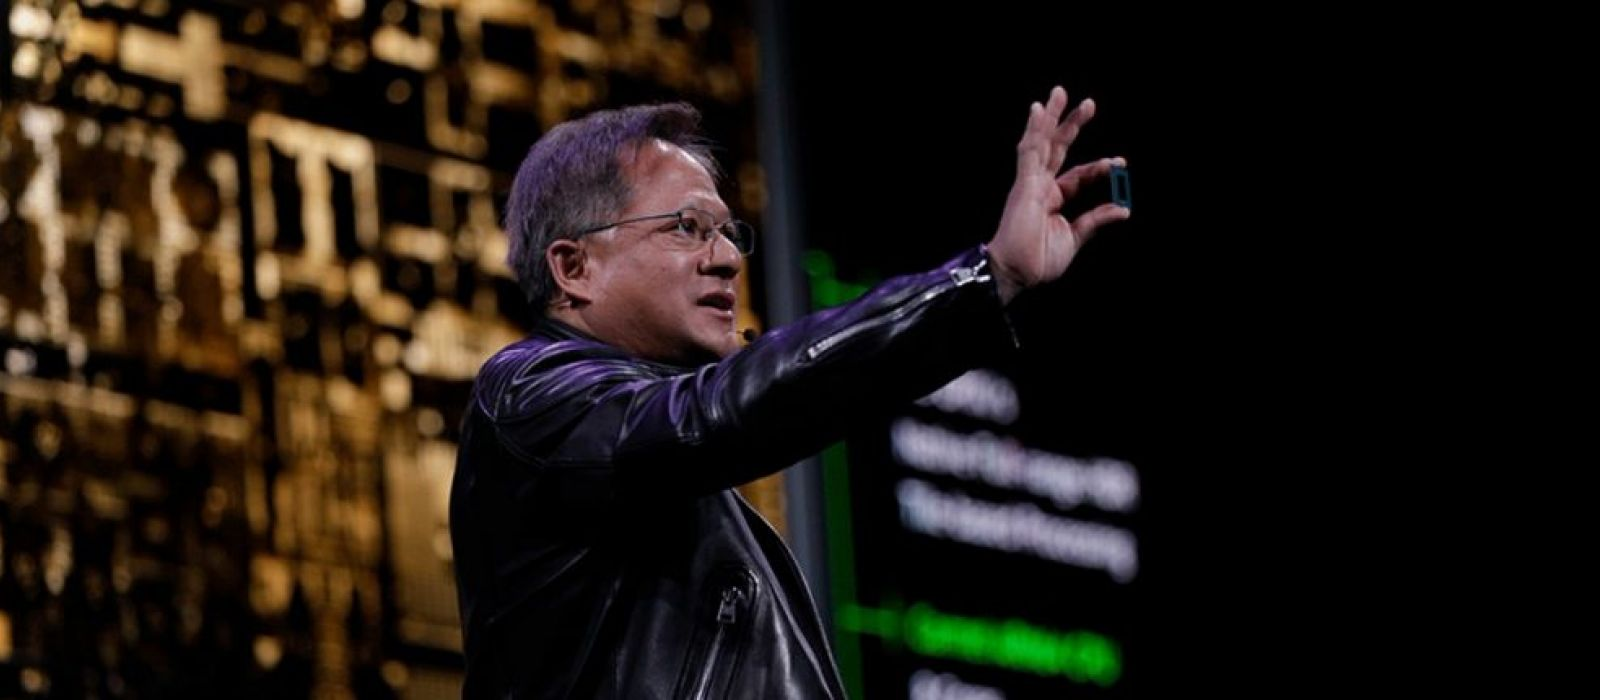 Итоги конференции Nvidia на CES 2018 — огромные мониторы, сервис GeForce NOW, Freestyle, ИИ-машины и новые видеокарты